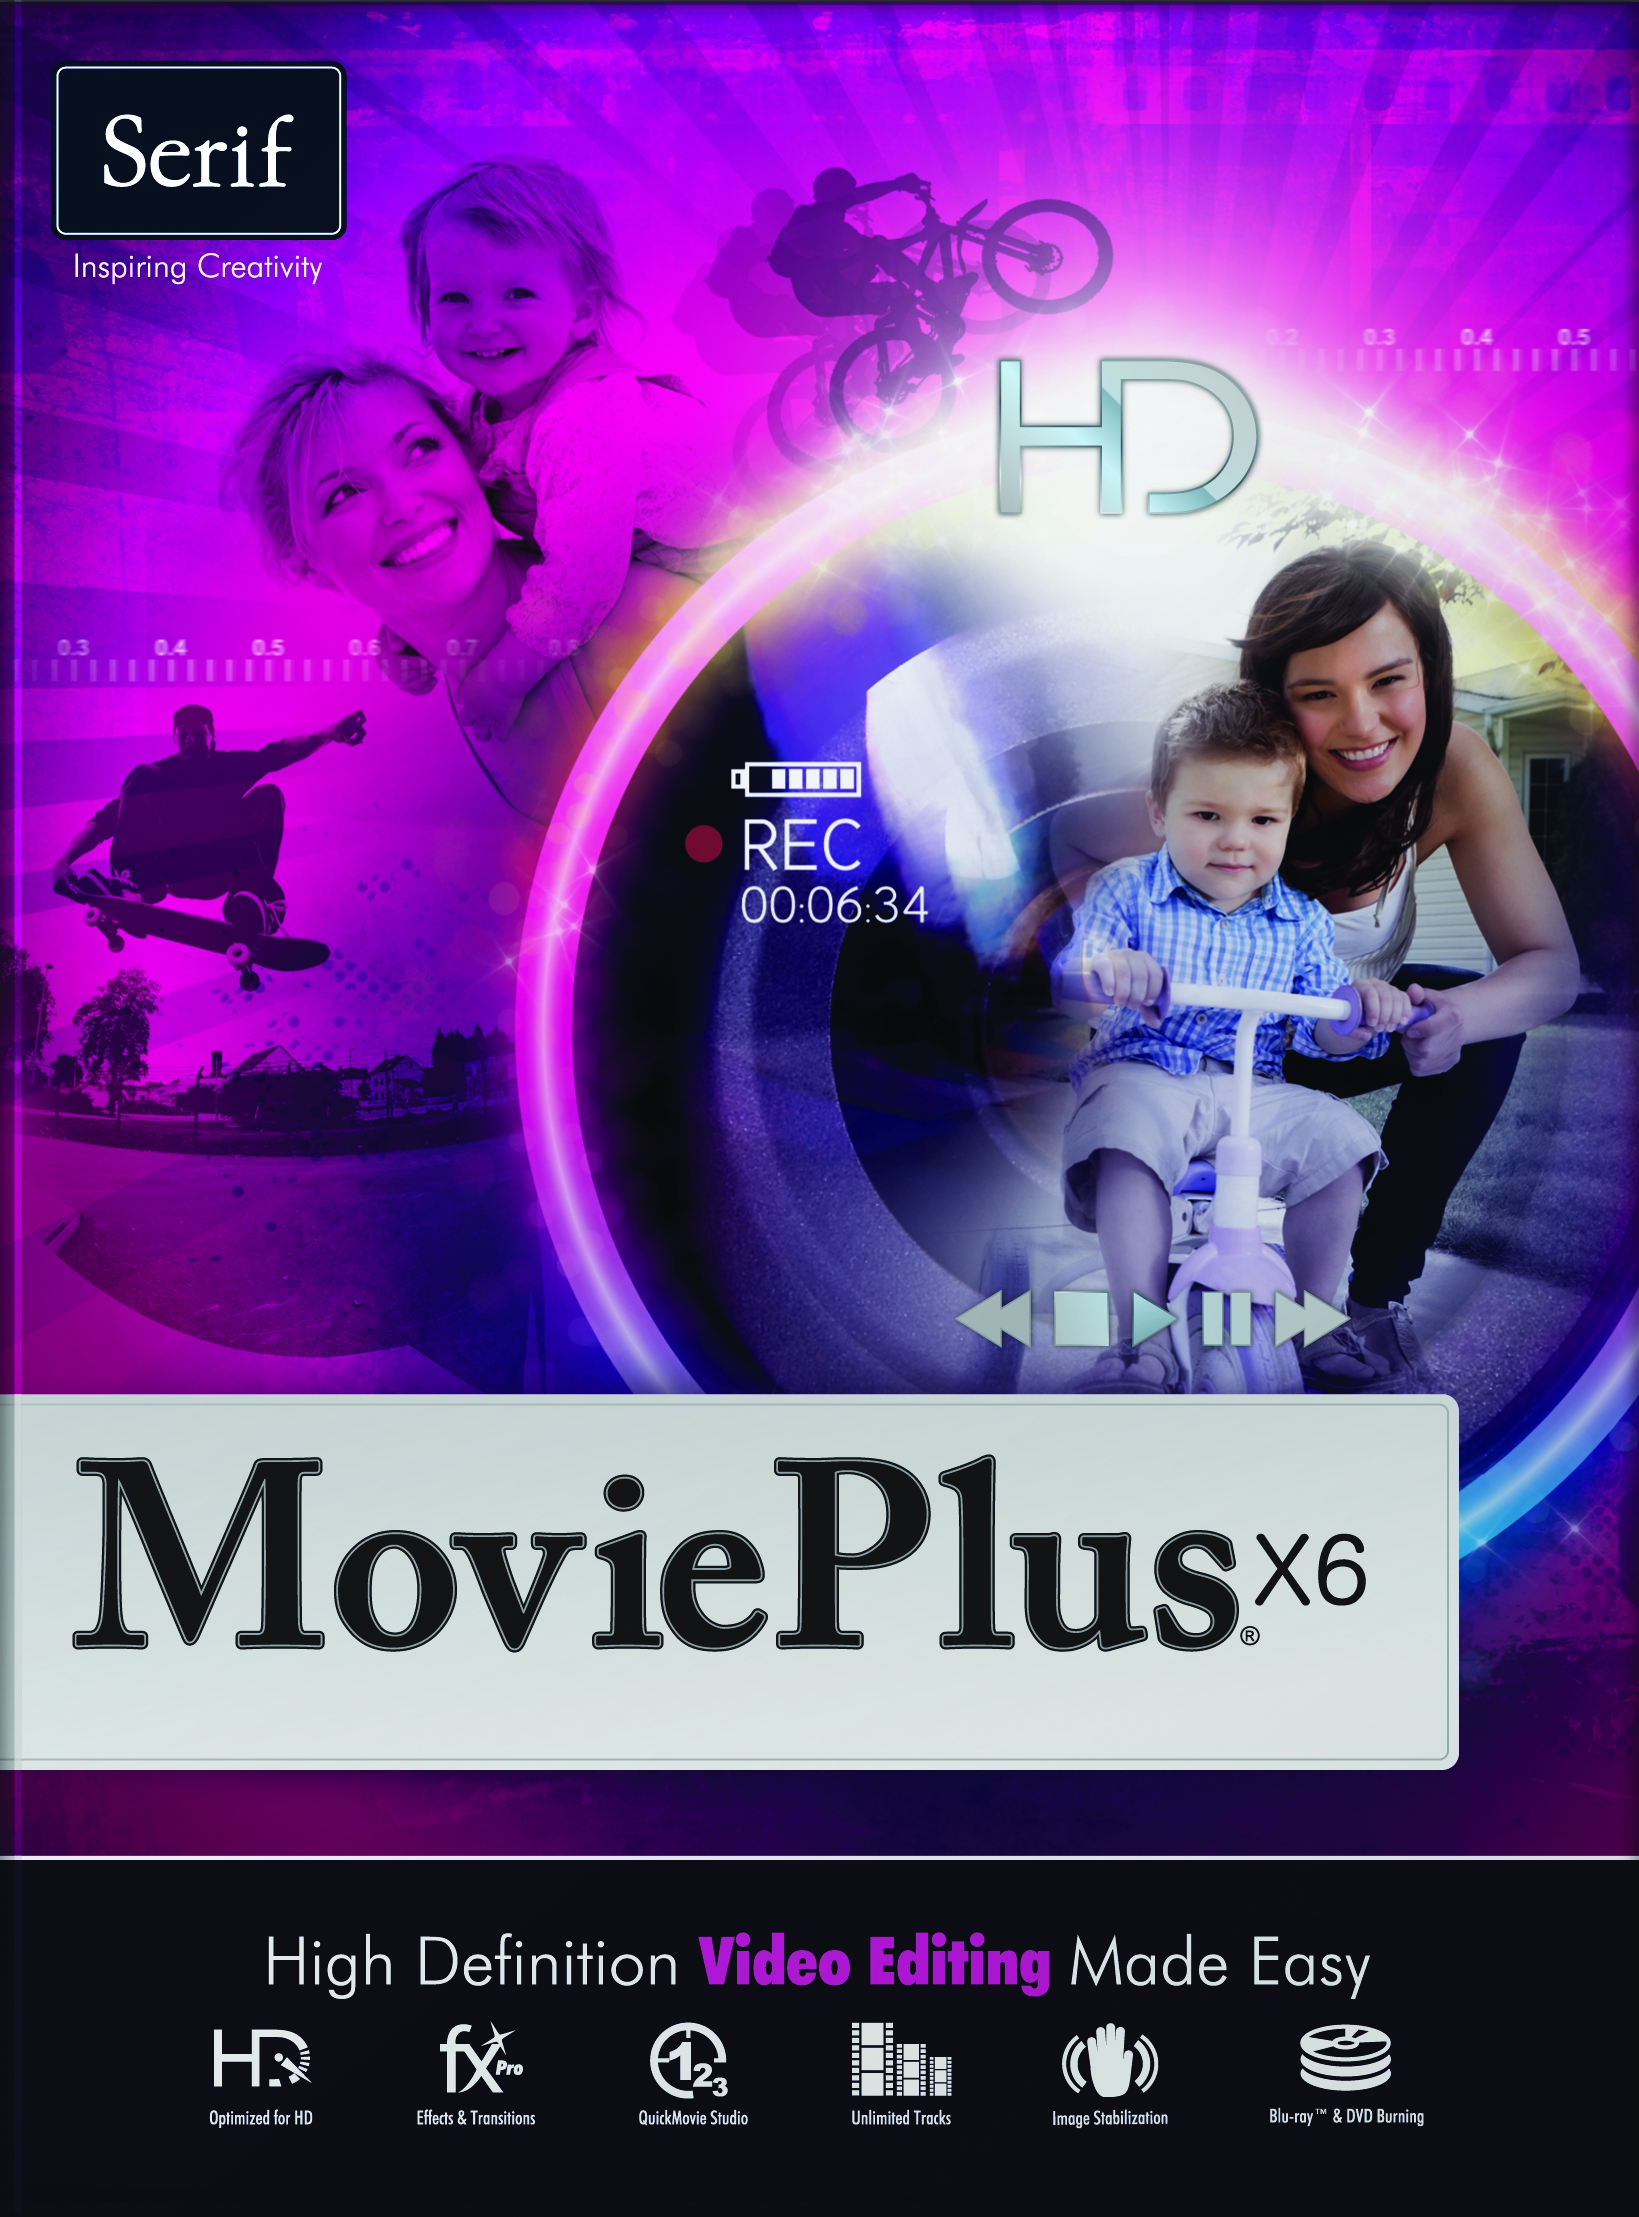 how to use movieplus x6